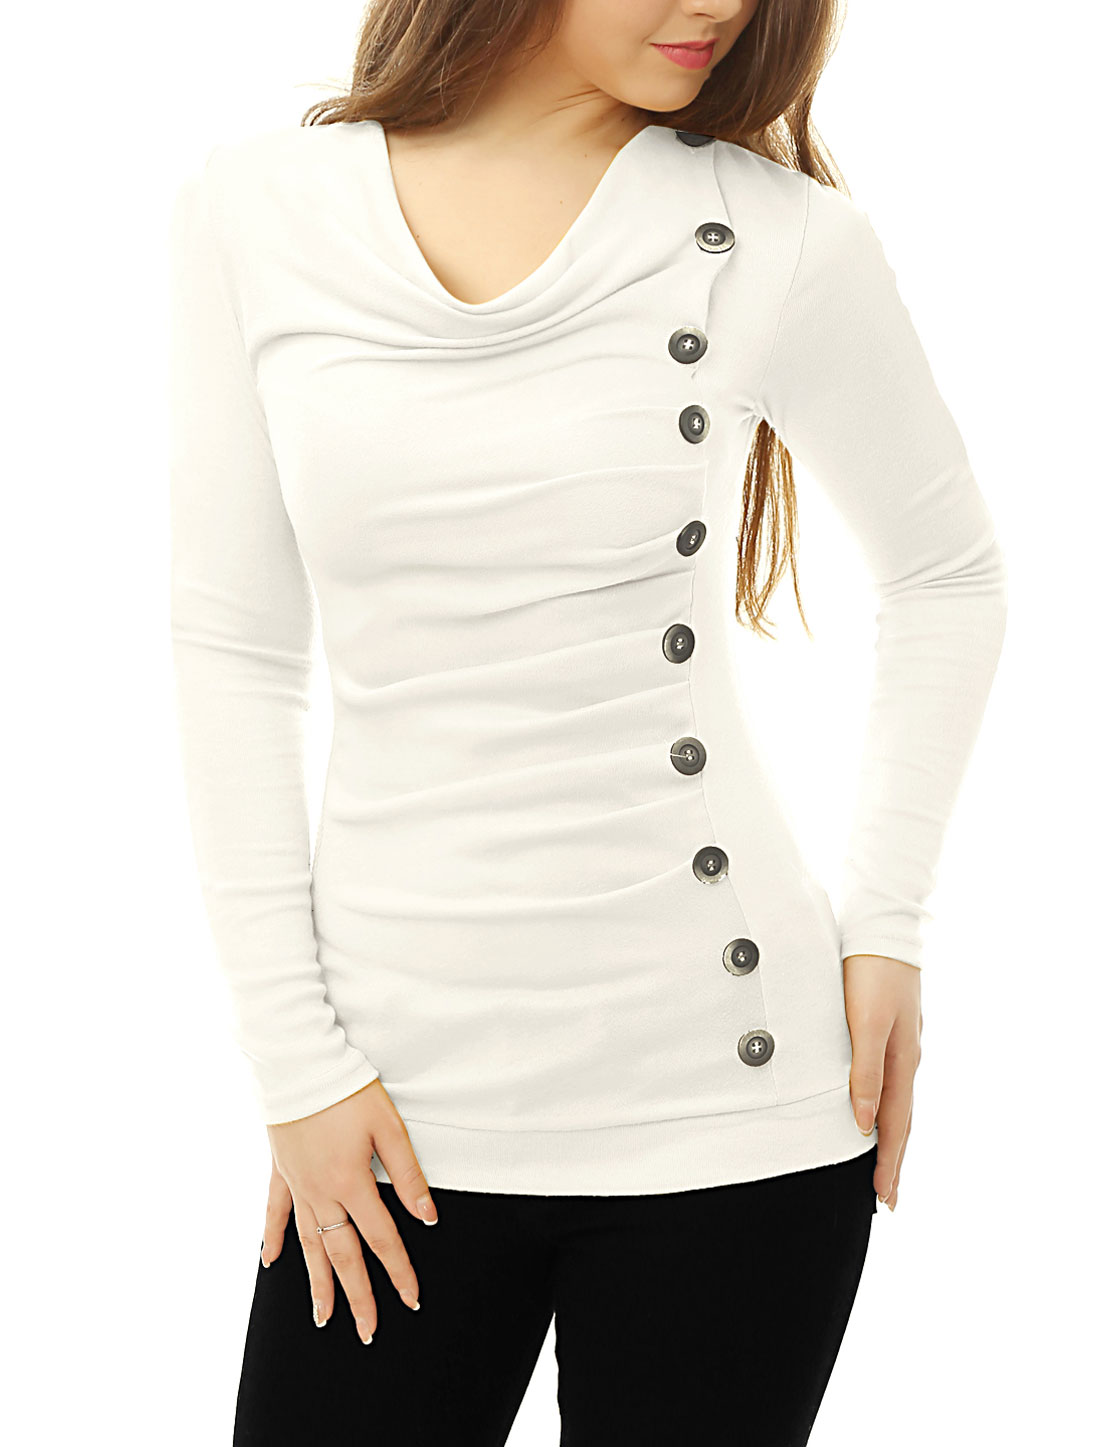 Women Cowl Neck Long Sleeves Buttons Decor Ruched Top White M